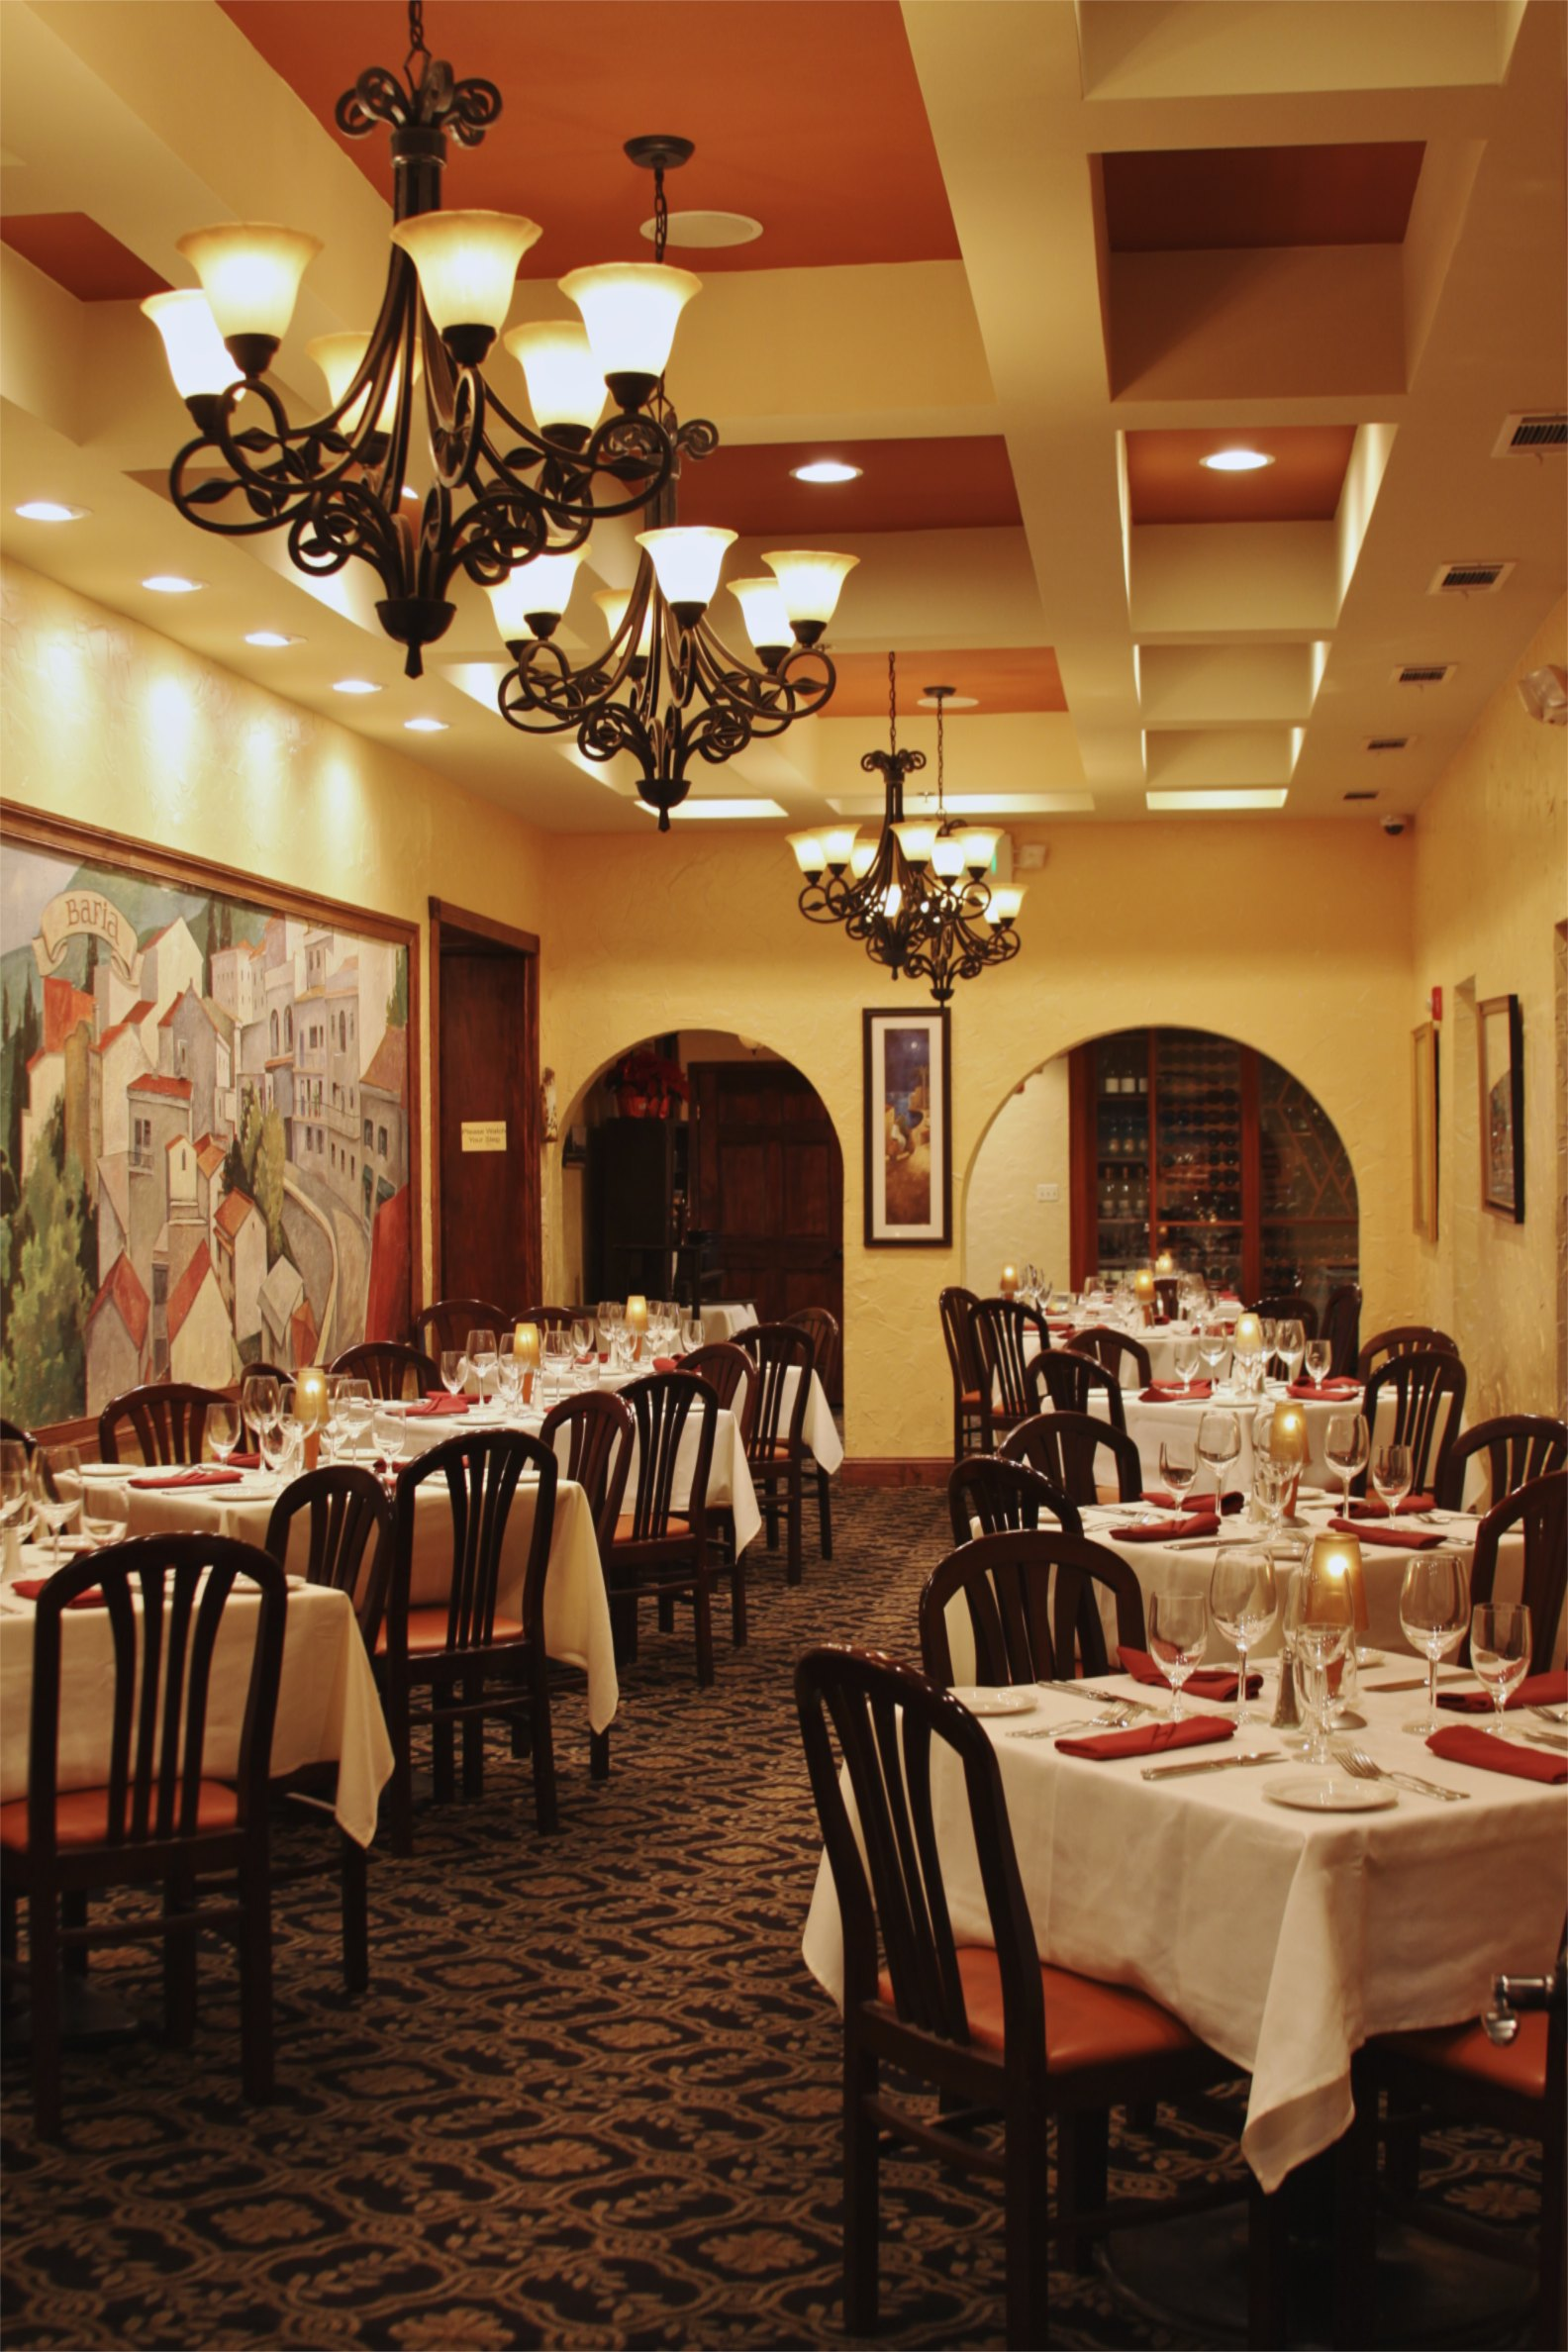 La Scala Ristorante Italiano Wedding Venue in Baltimore  PartySpace